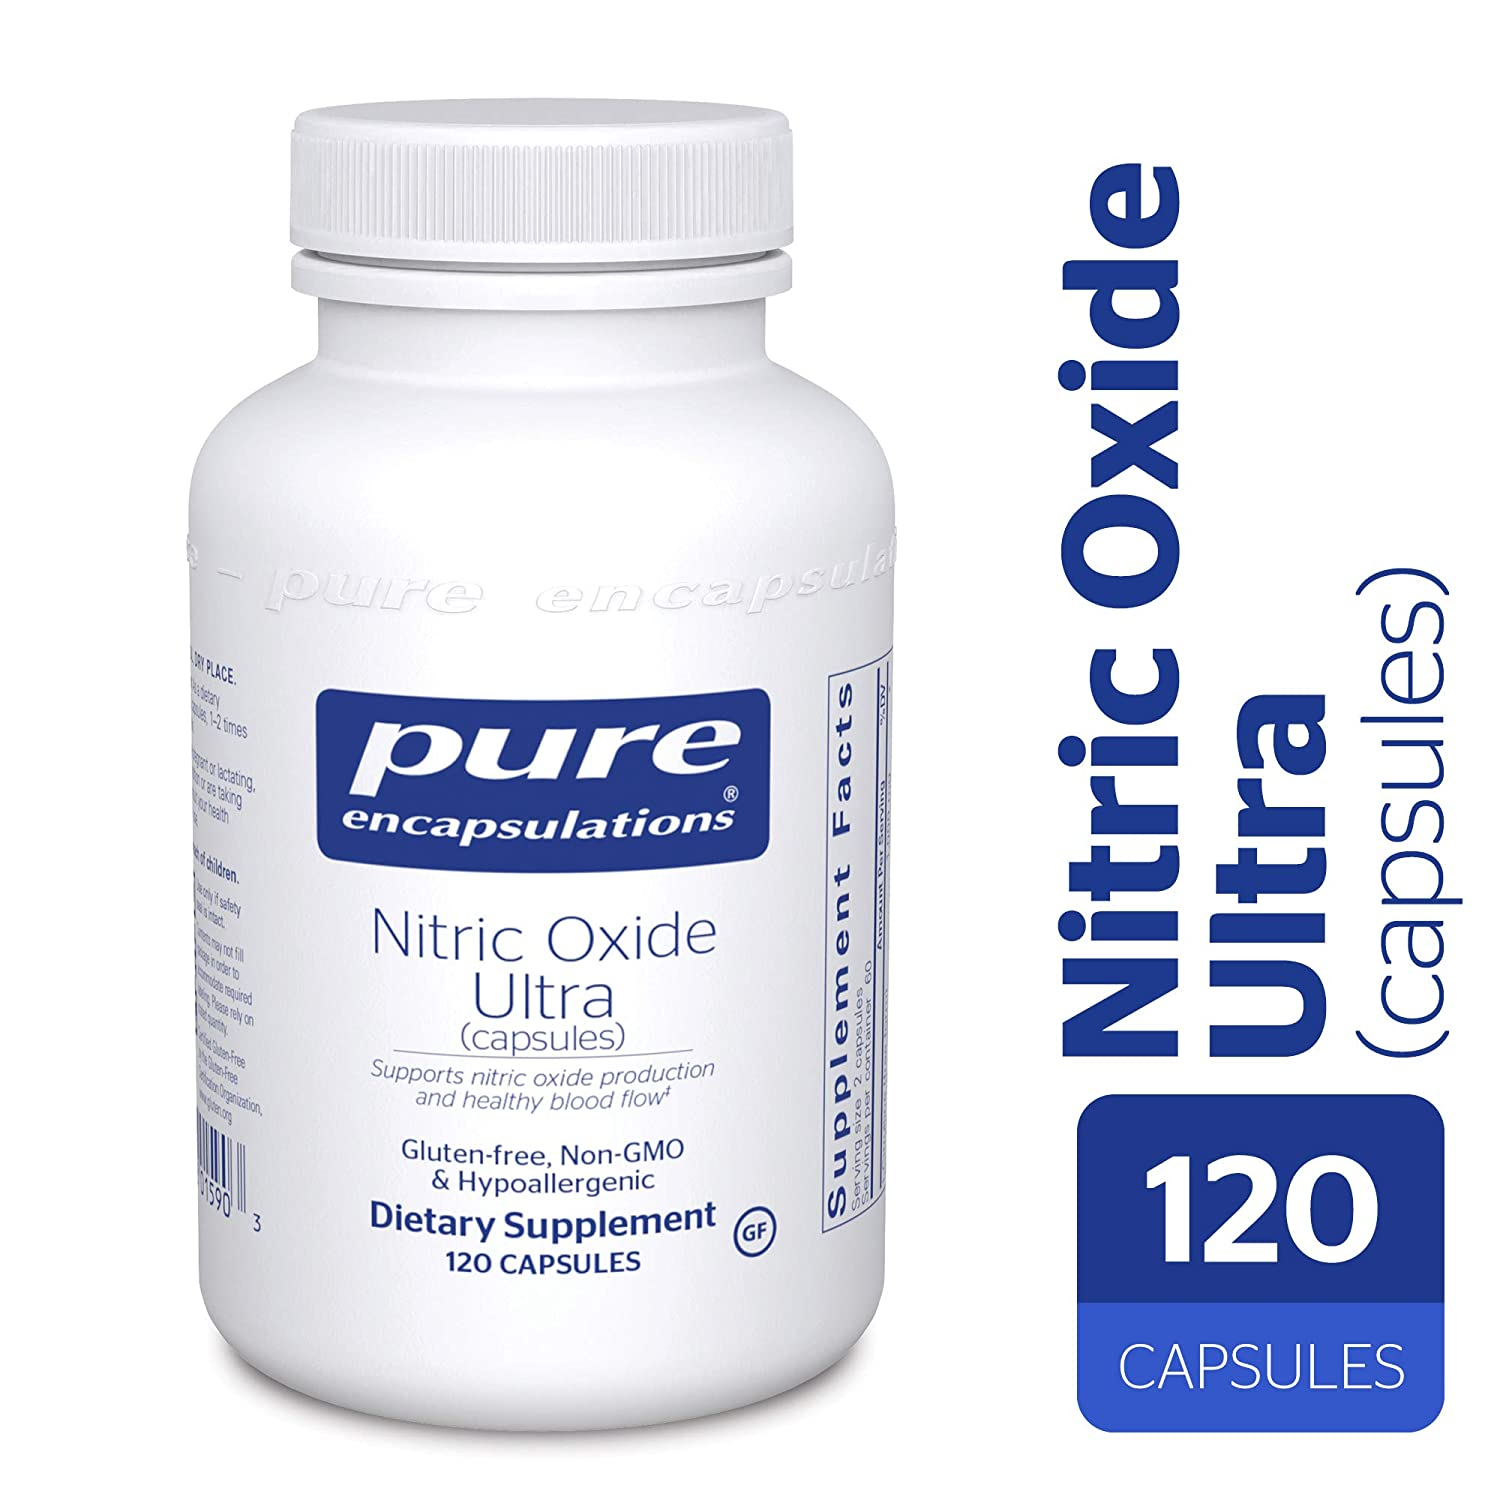 Pure Encapsulations – Nitric Oxide Ultra Capsules – Hypoallergenic Supplement Supports Nitric Oxide Production and Healthy Blood Flow* – 120 Capsules